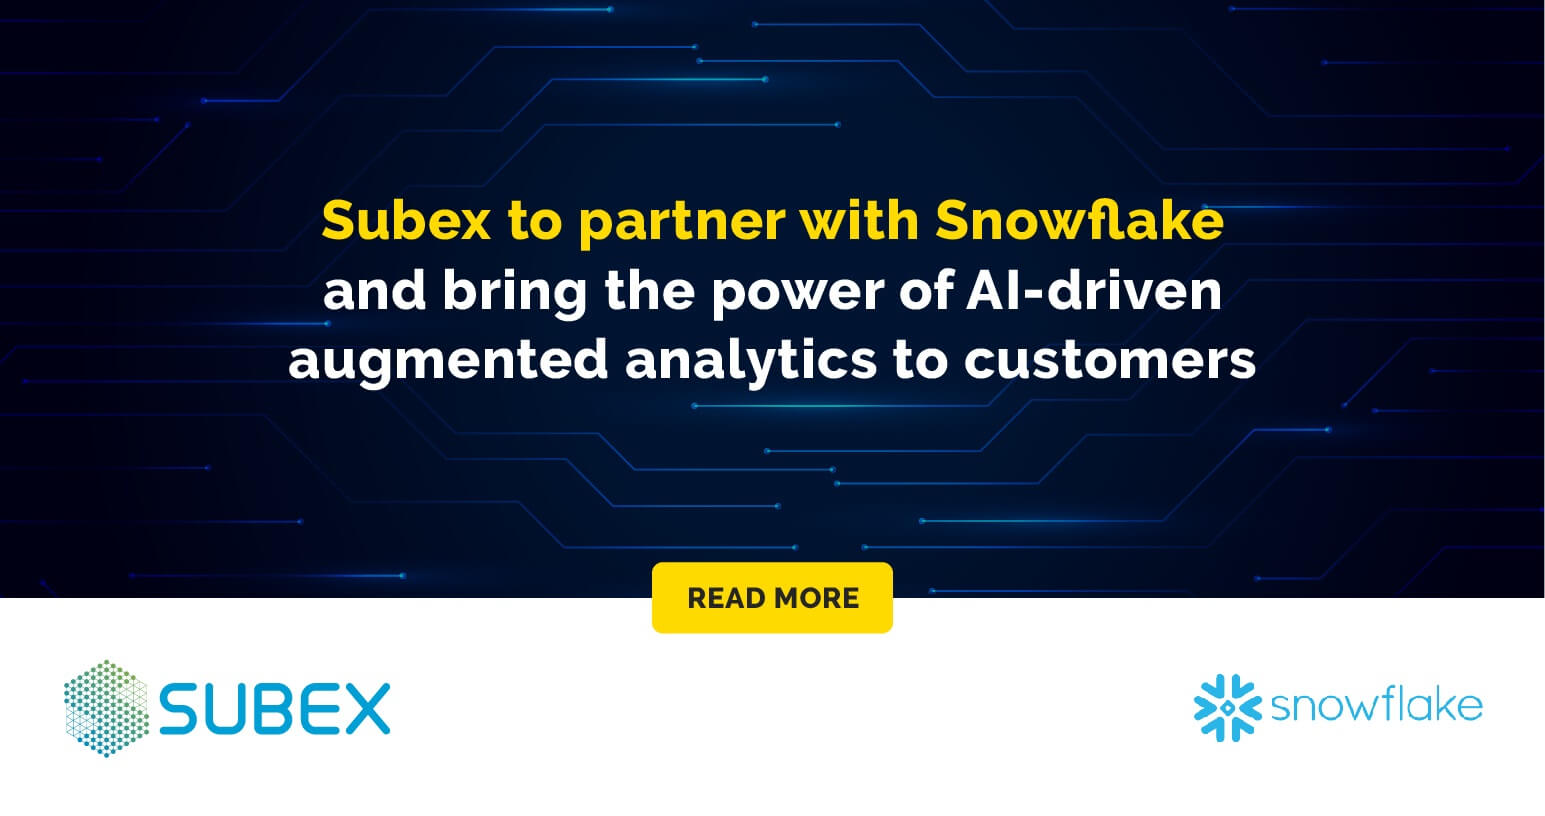 Subex to partner with Snowflake